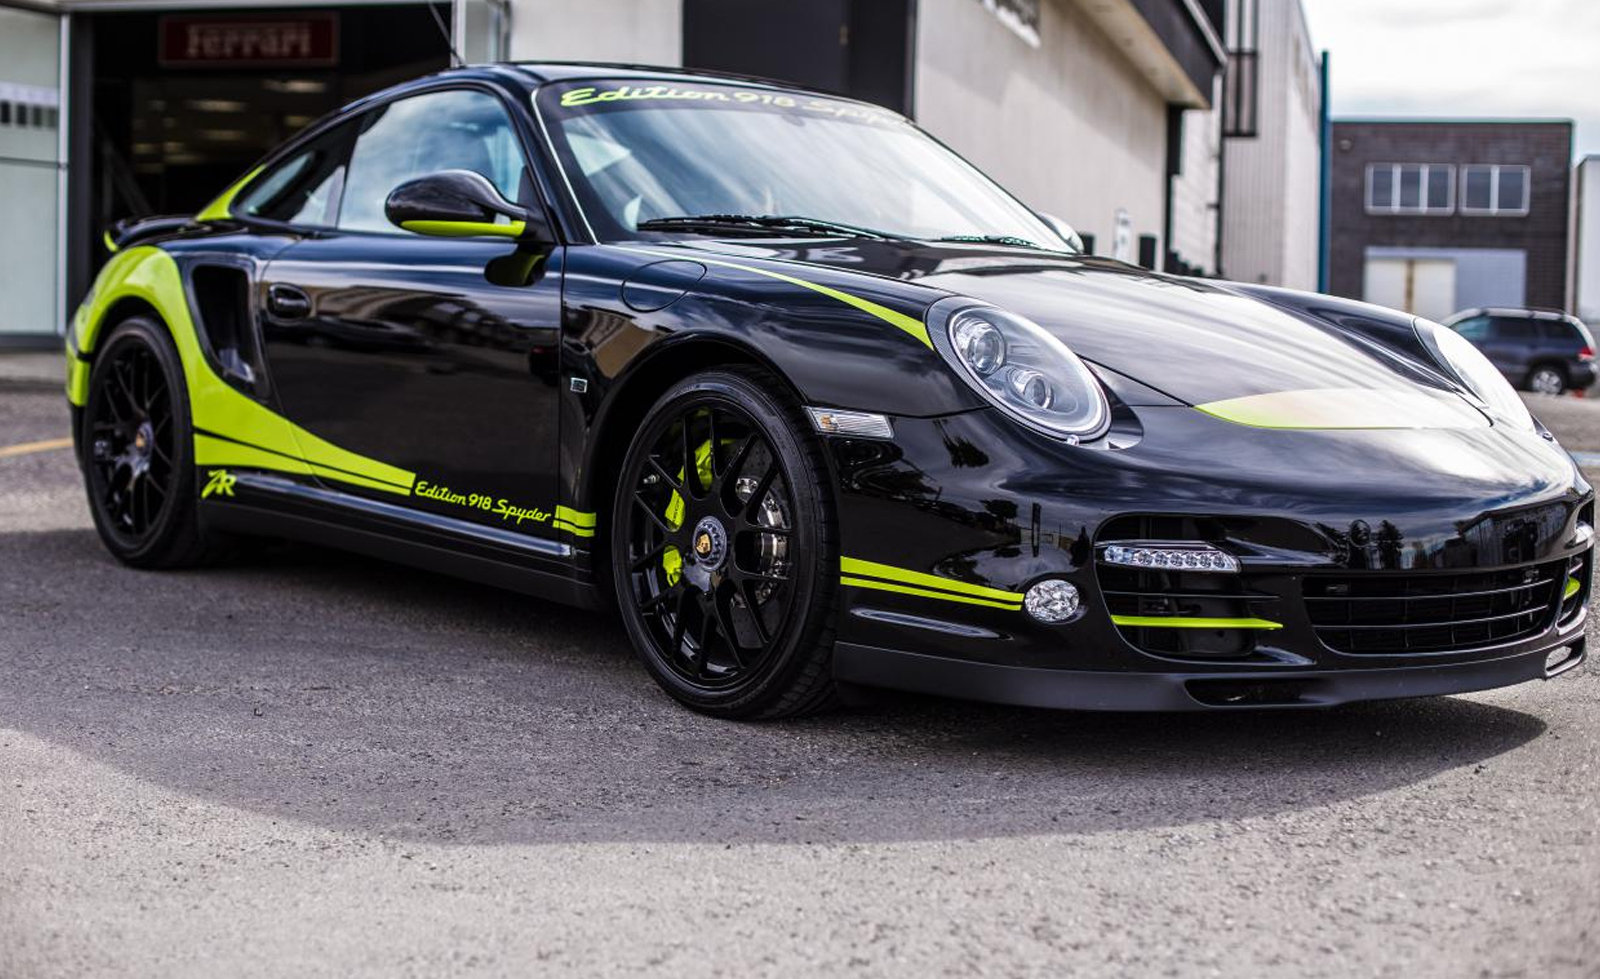 2011 porsche 911 turbo s edition 918 spyder by zr auto picture 528390 car review top speed. Black Bedroom Furniture Sets. Home Design Ideas